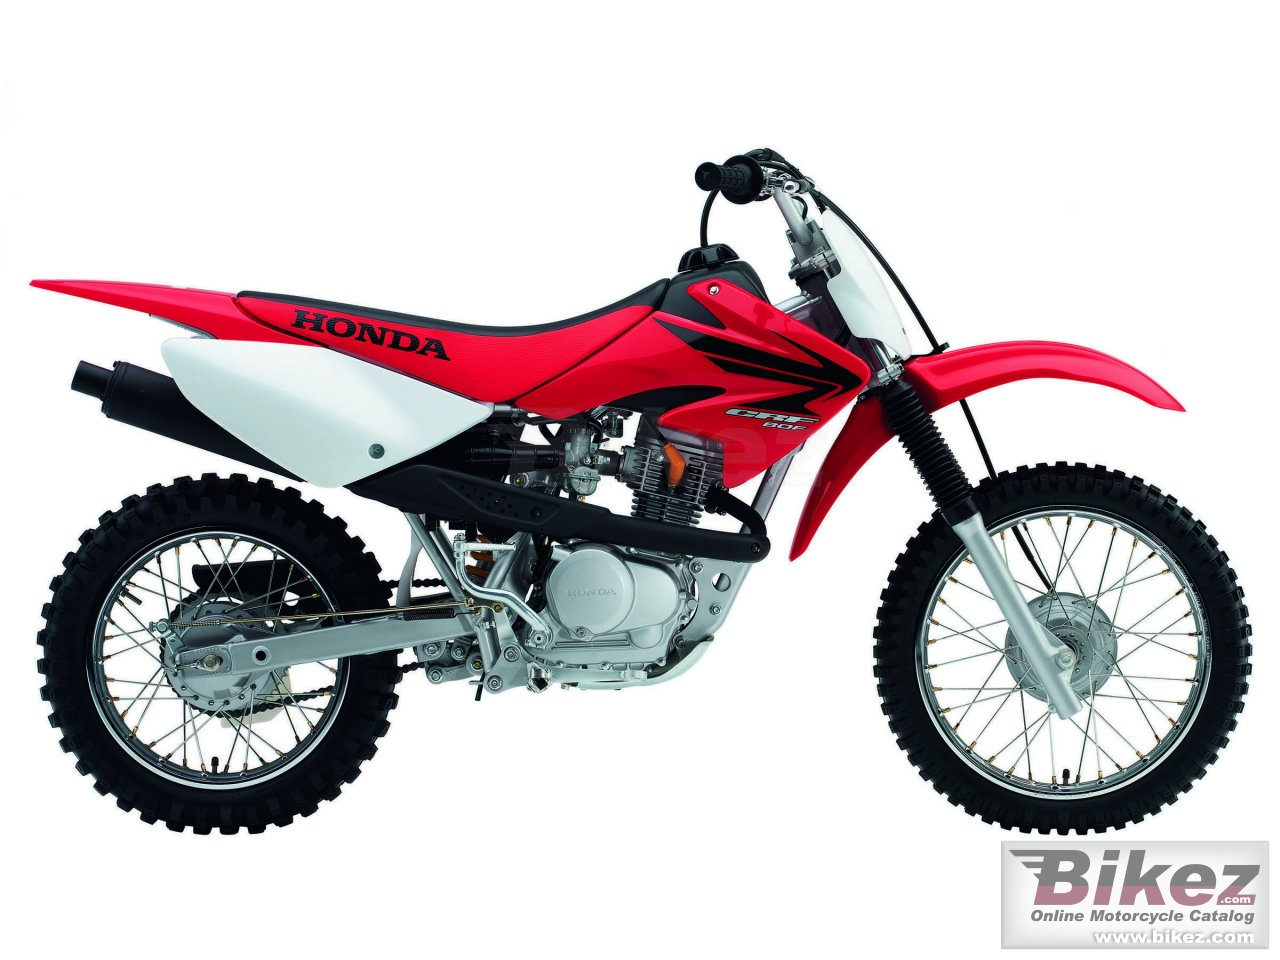 Big Honda crf 80 f picture and wallpaper from Bikez.com